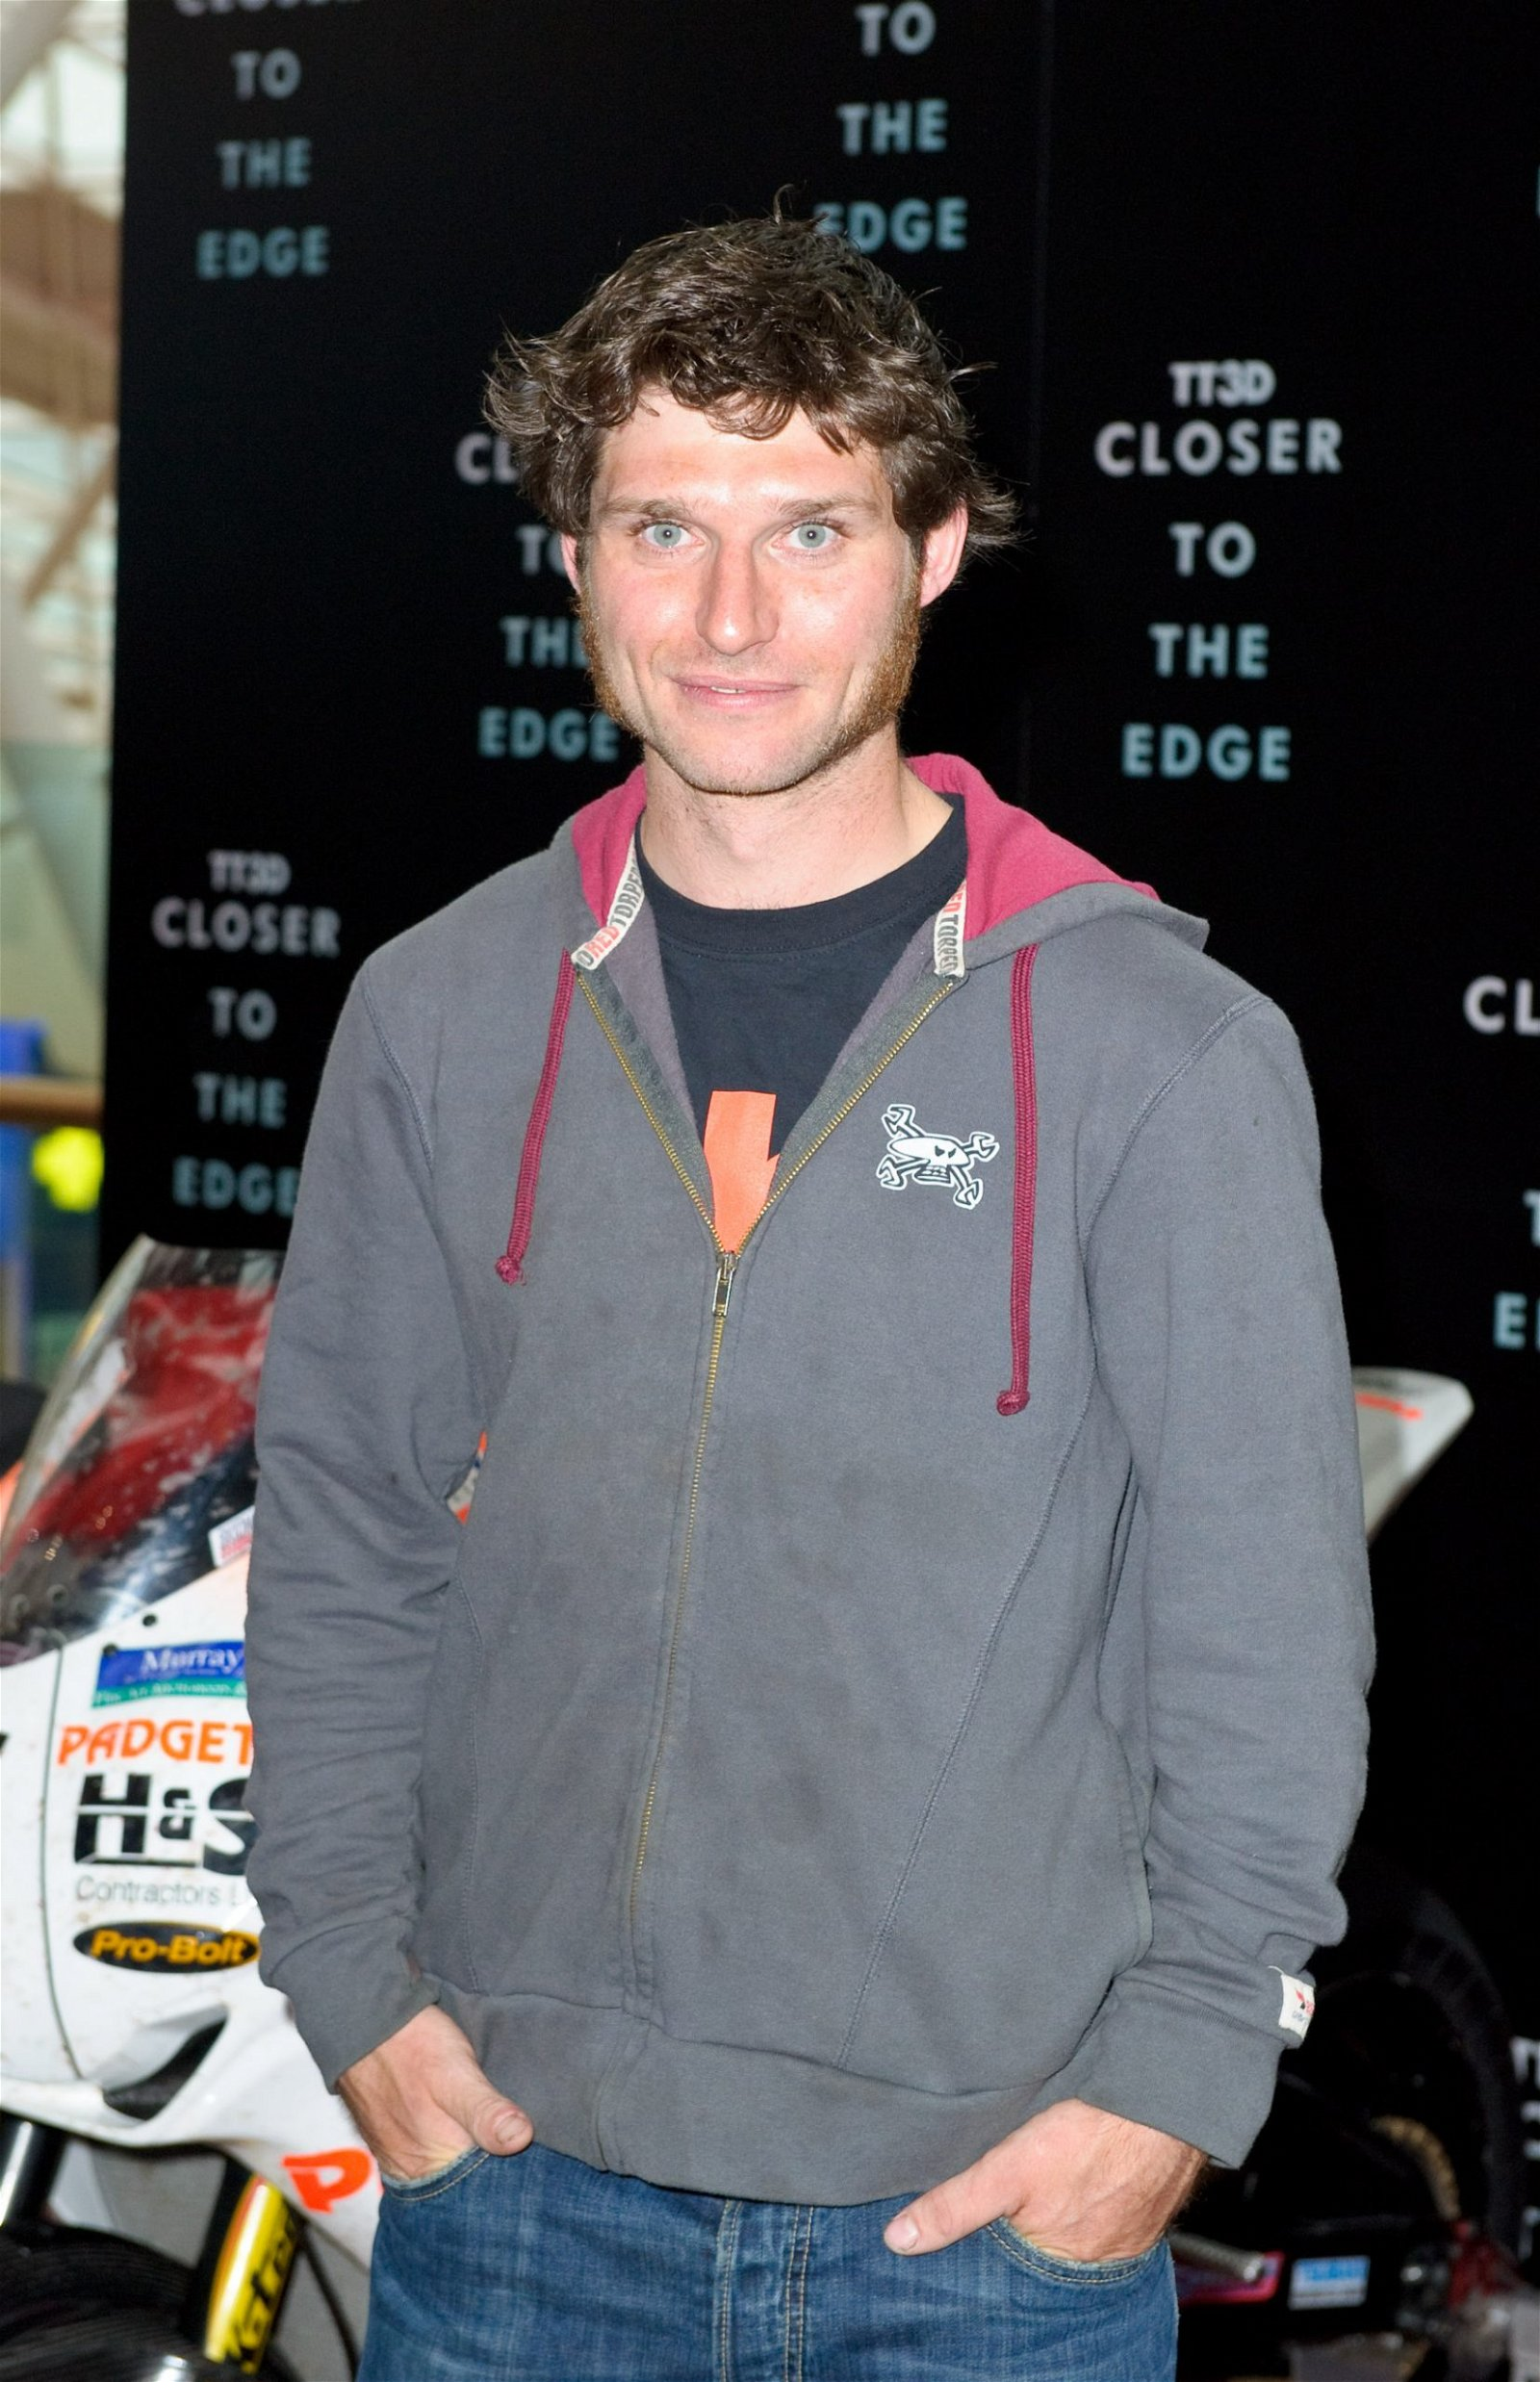 Guy martin image courtesy of iomtt.com